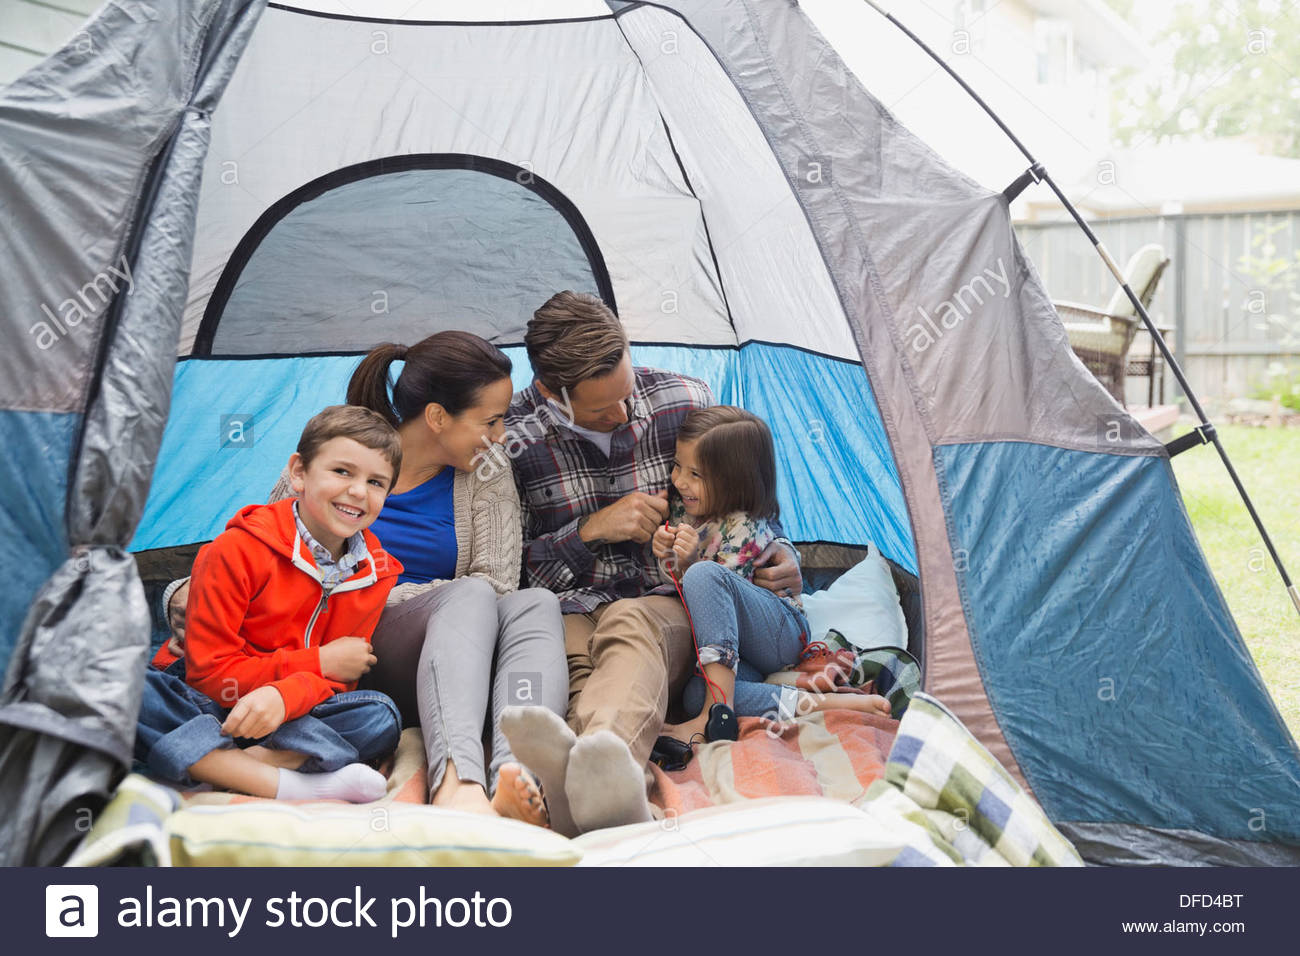 Family of four sitting together in tent - Stock Image